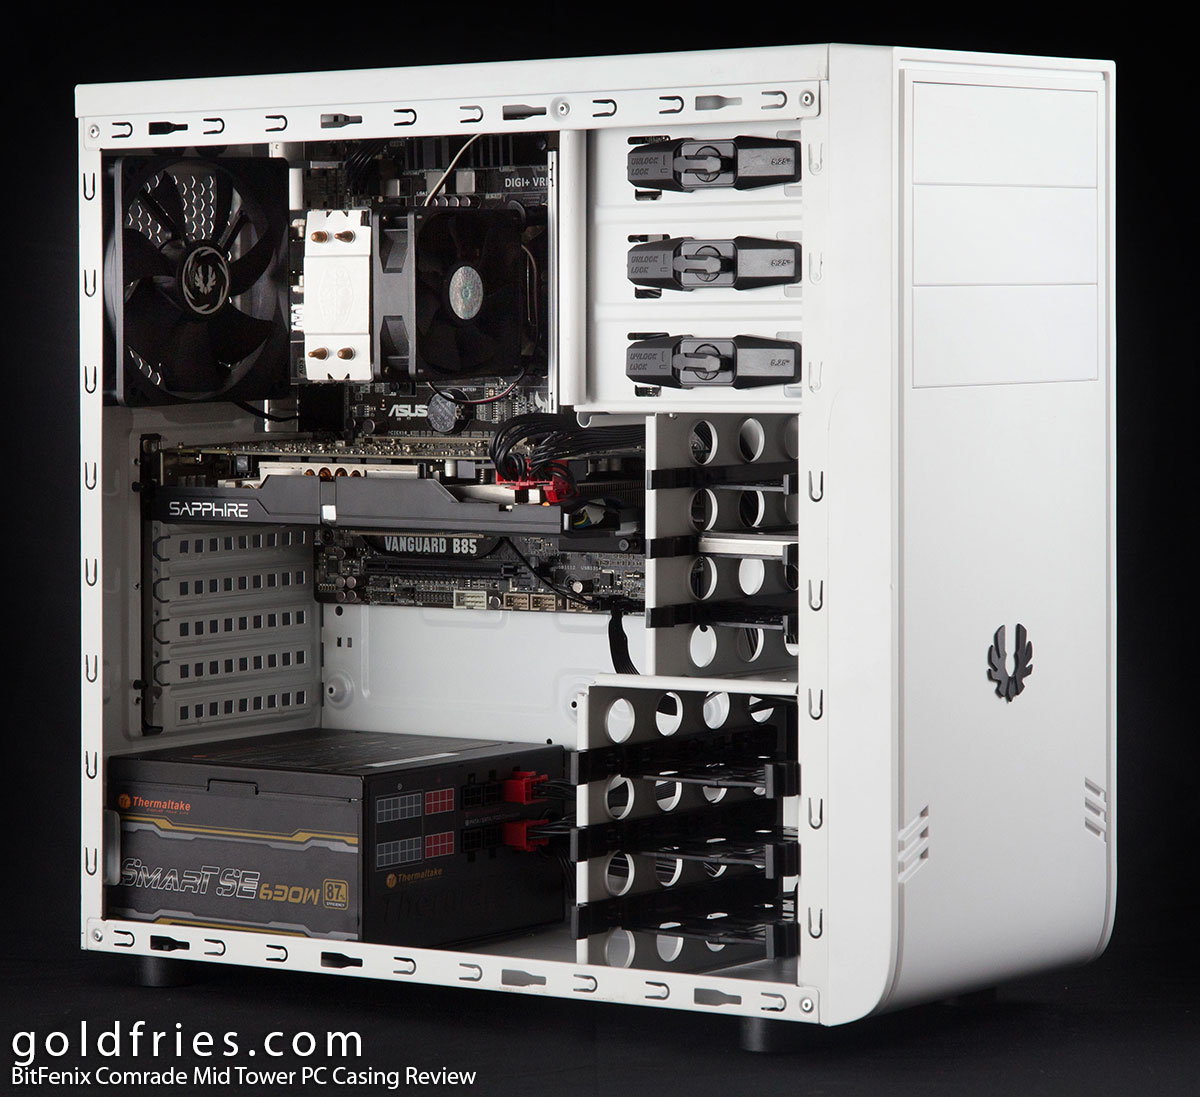 BitFenix Comrade Mid Tower PC Casing Review